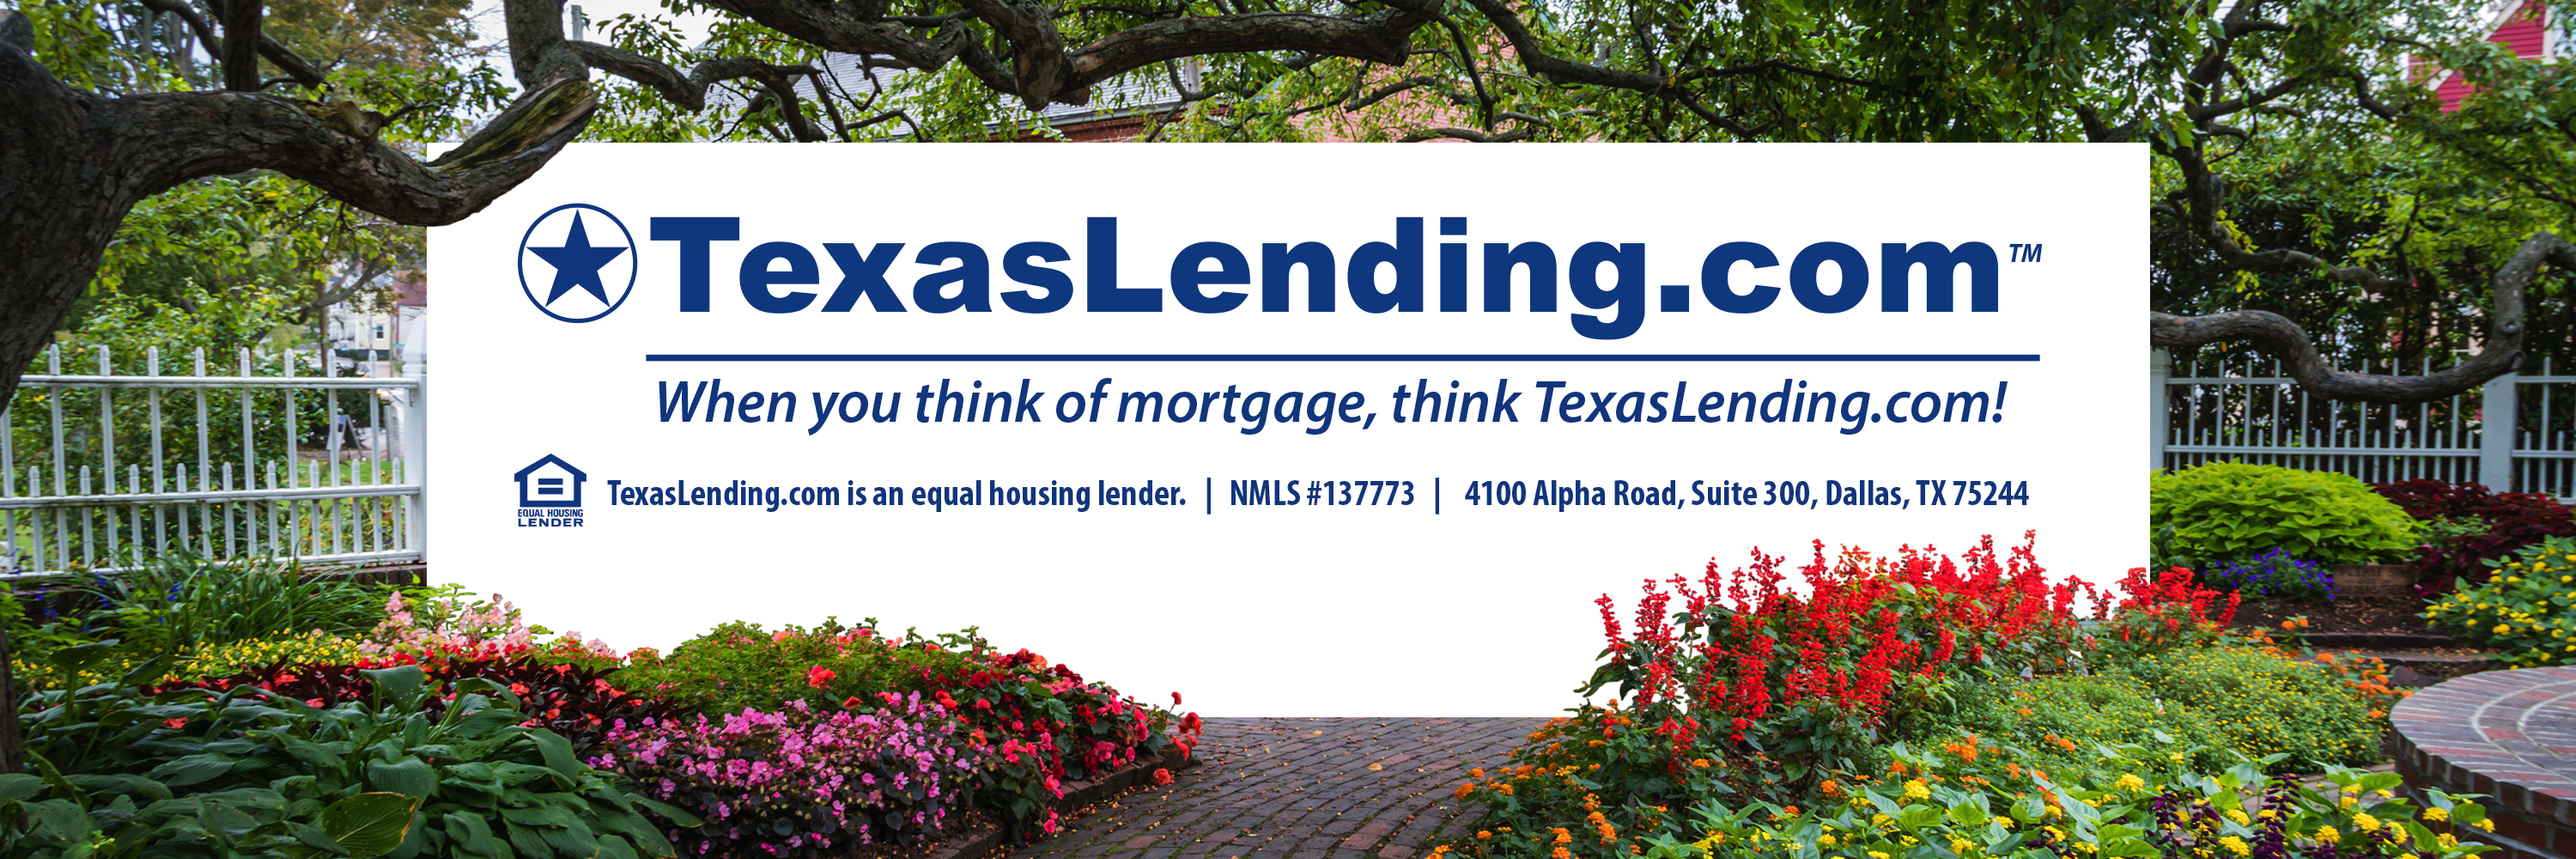 TexasLending.com reviews | Financial Services at 4100 Alpha Road - Dallas TX